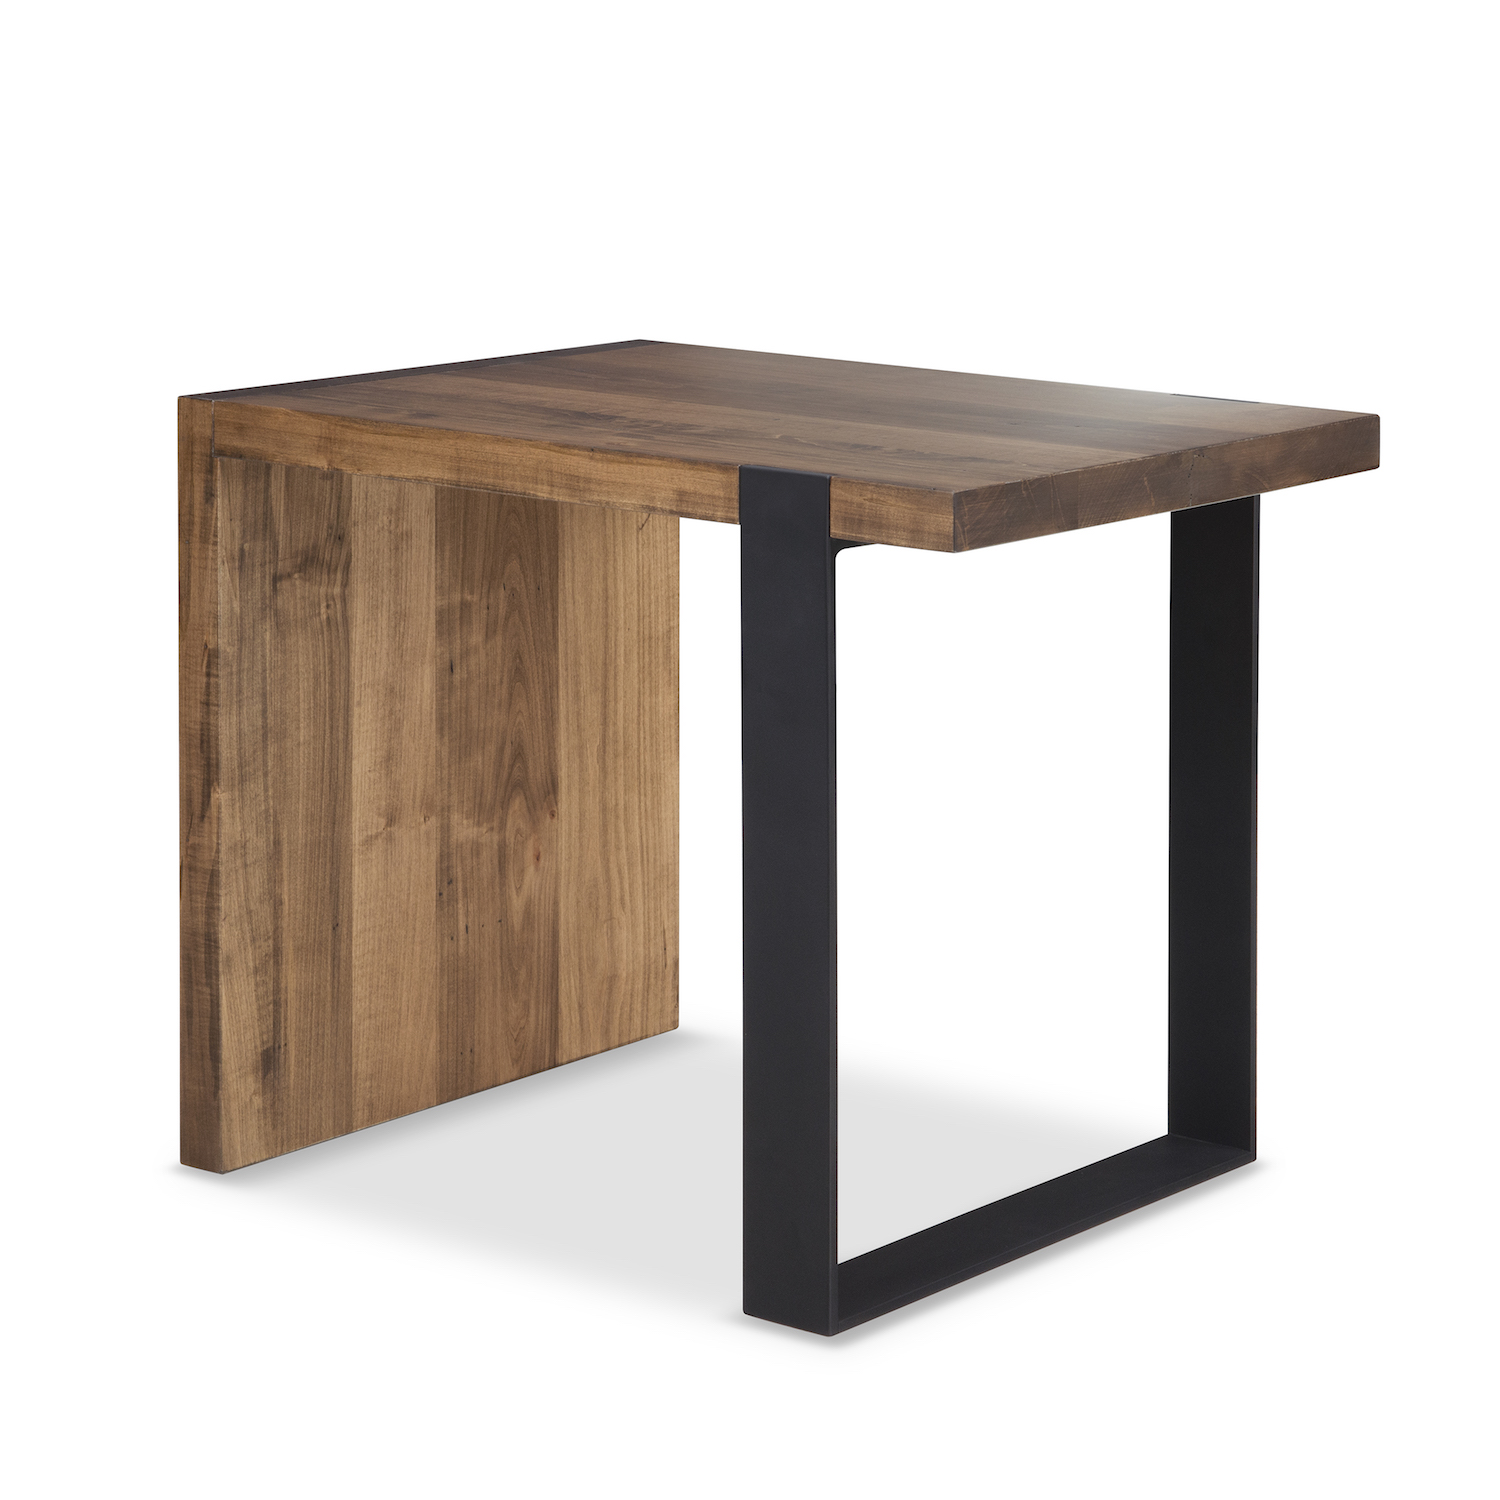 Parkdale_End_Table_Angled.jpg